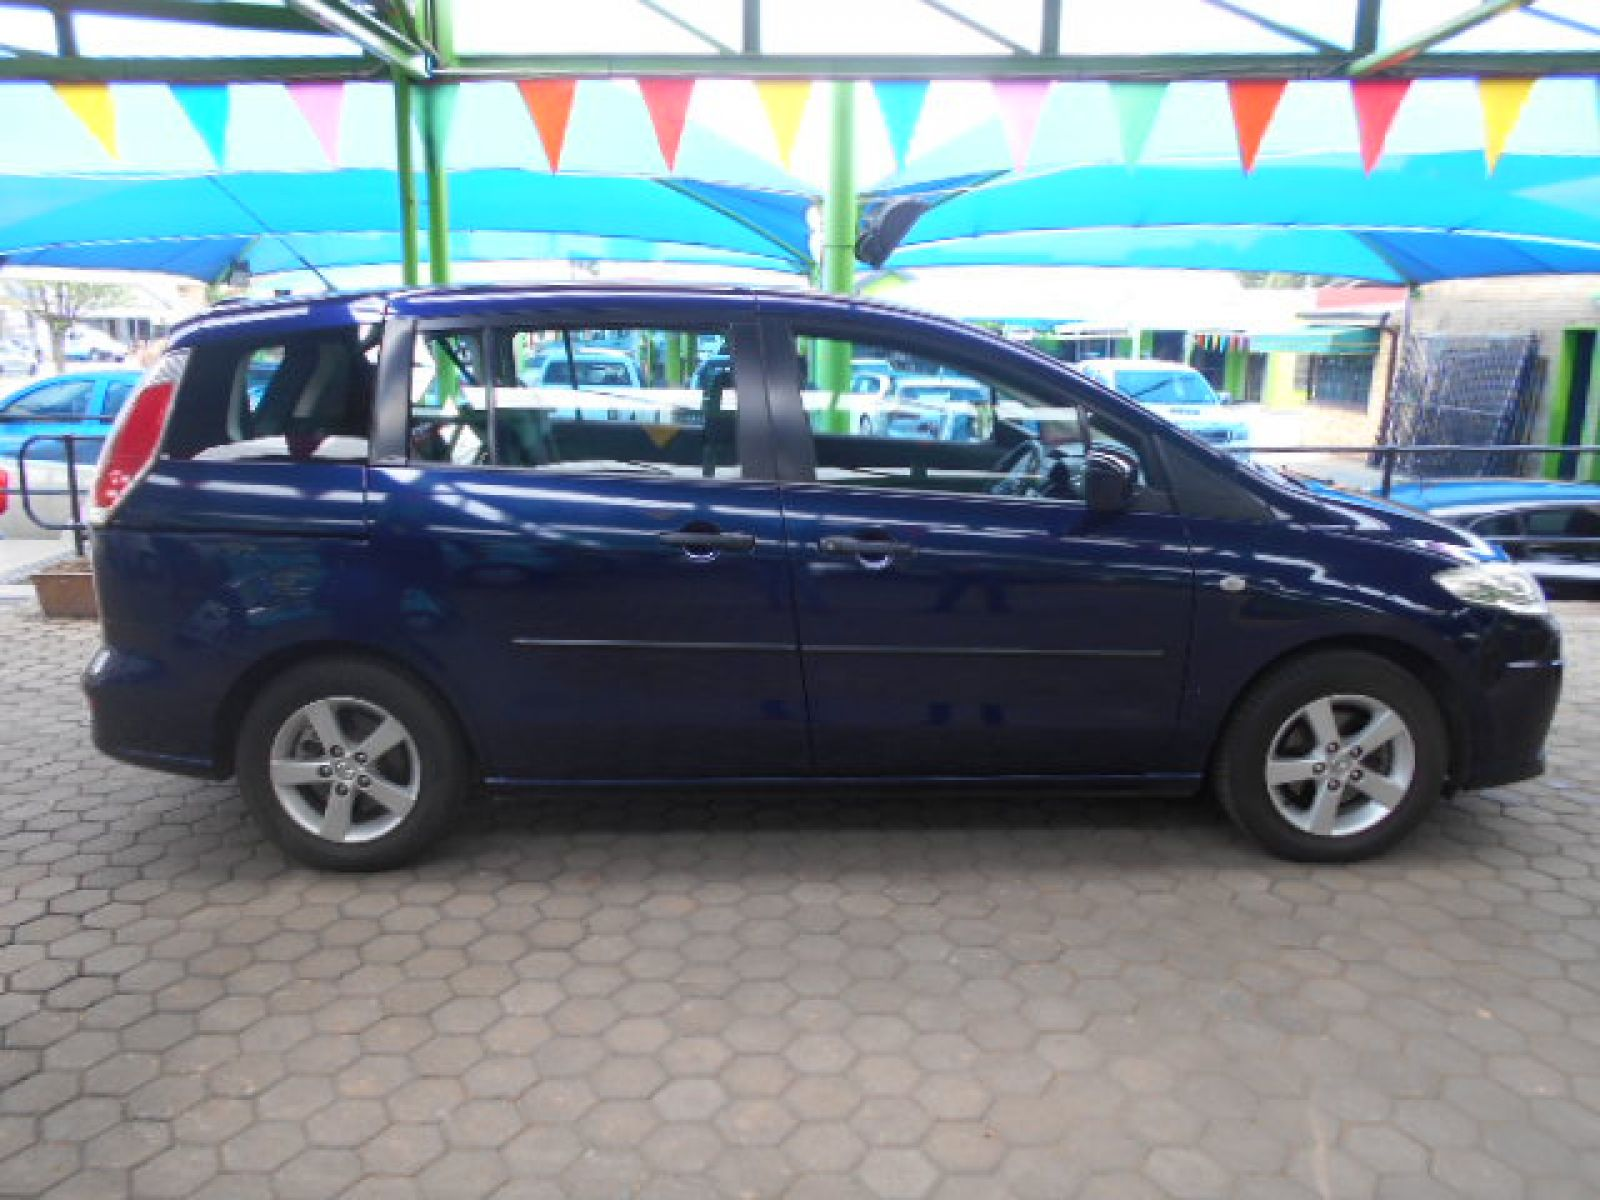 2009 Mazda 5 R 139 990 For Sale Kilokor Motors